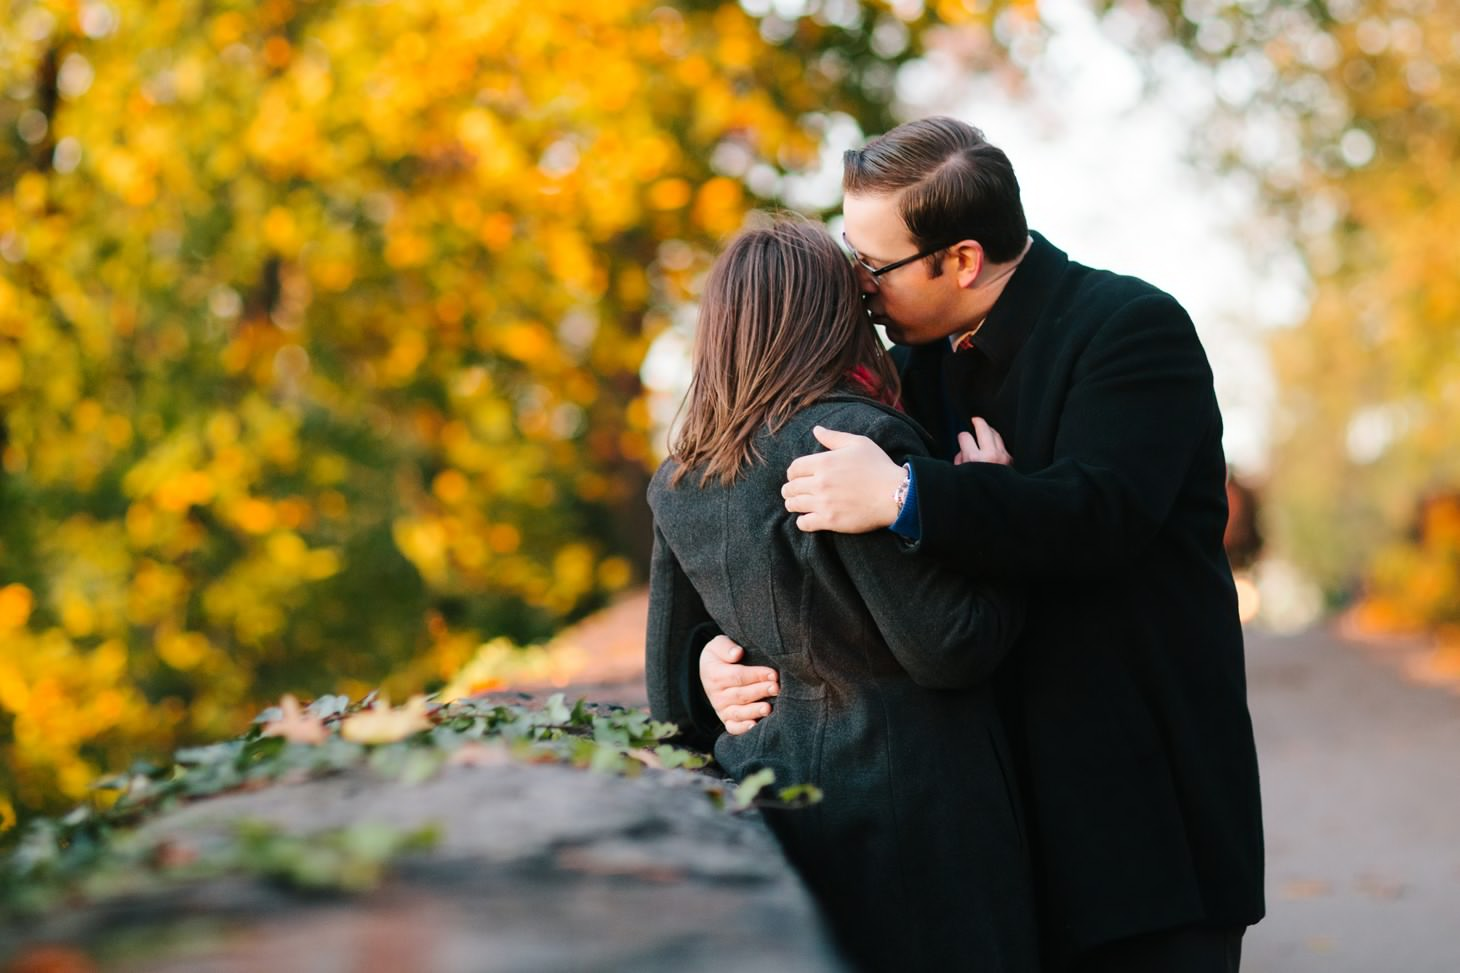 007-nyc-wedding-portrait-photographer-engagement-photos-cloisters-fall-leaves-smitten-chickens.jpg